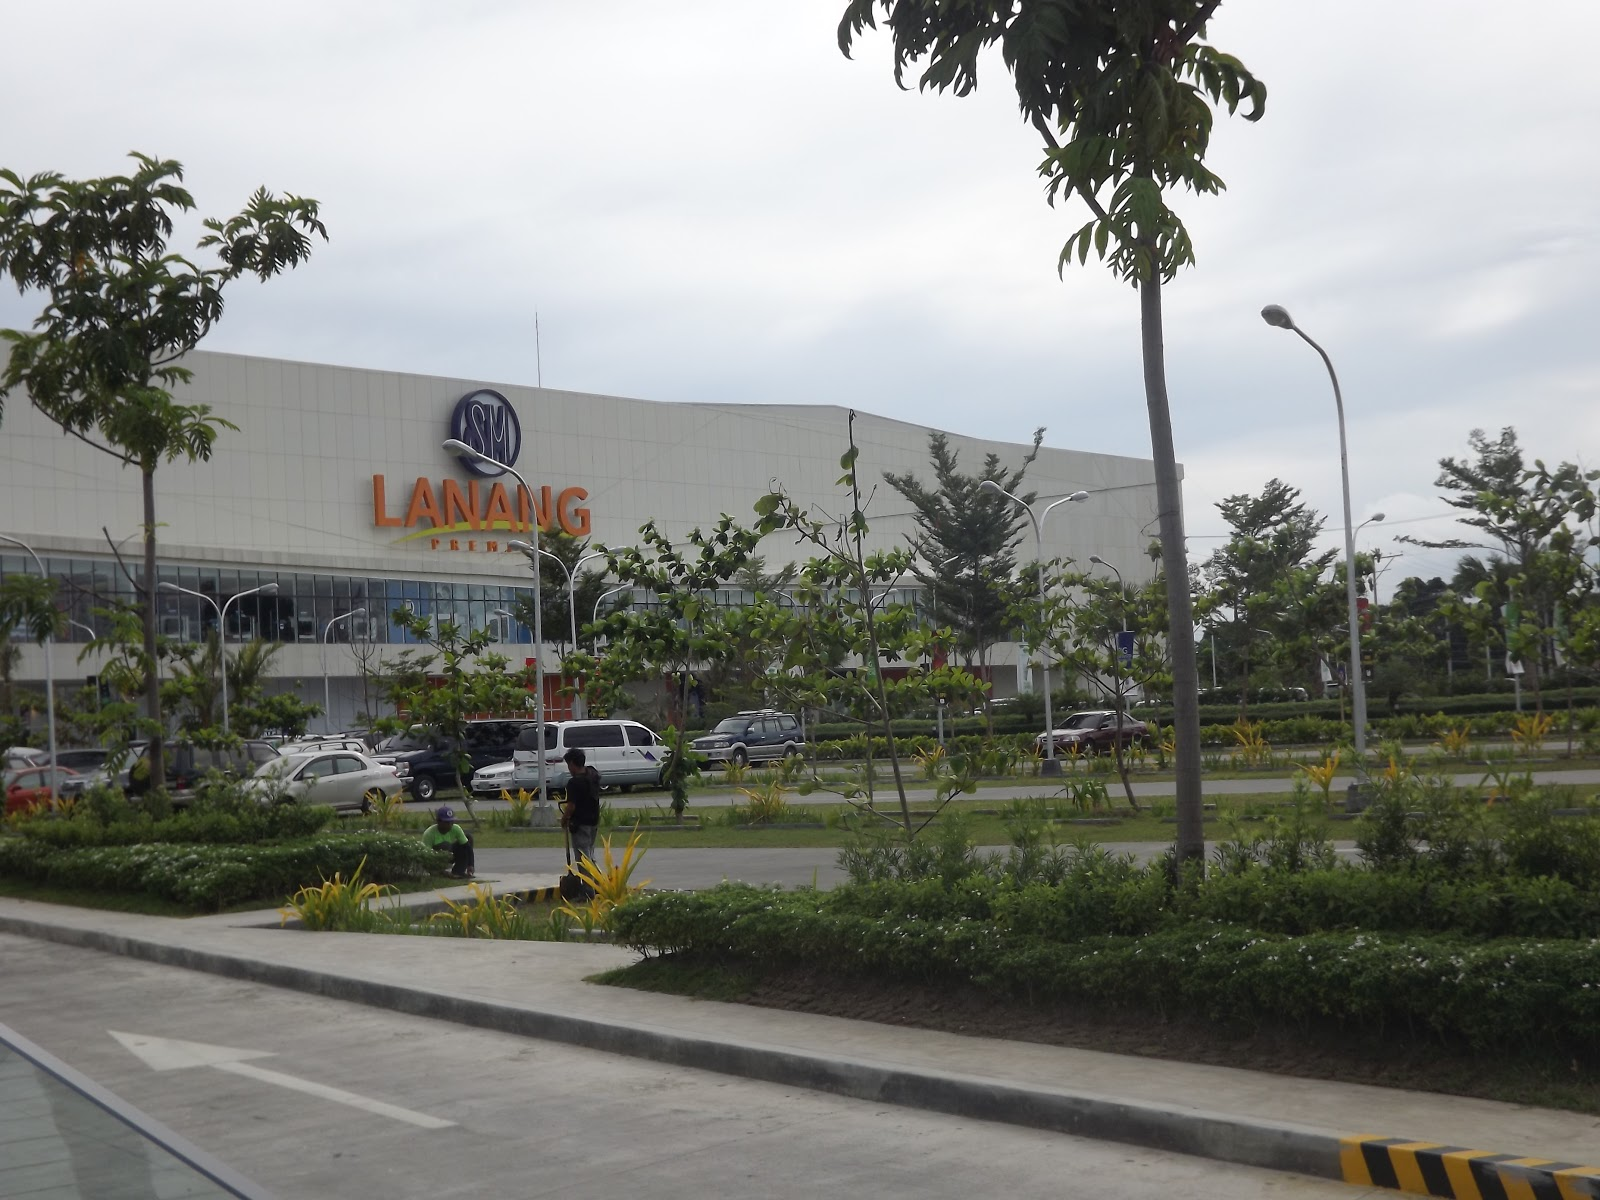 Crib for sale in davao city -  Been Opened To The Public Last October 24 2012 It Is Located In Lanang Almost In Front Of Damosa Gateway This Shopping Mall Is Not Just A Crib For